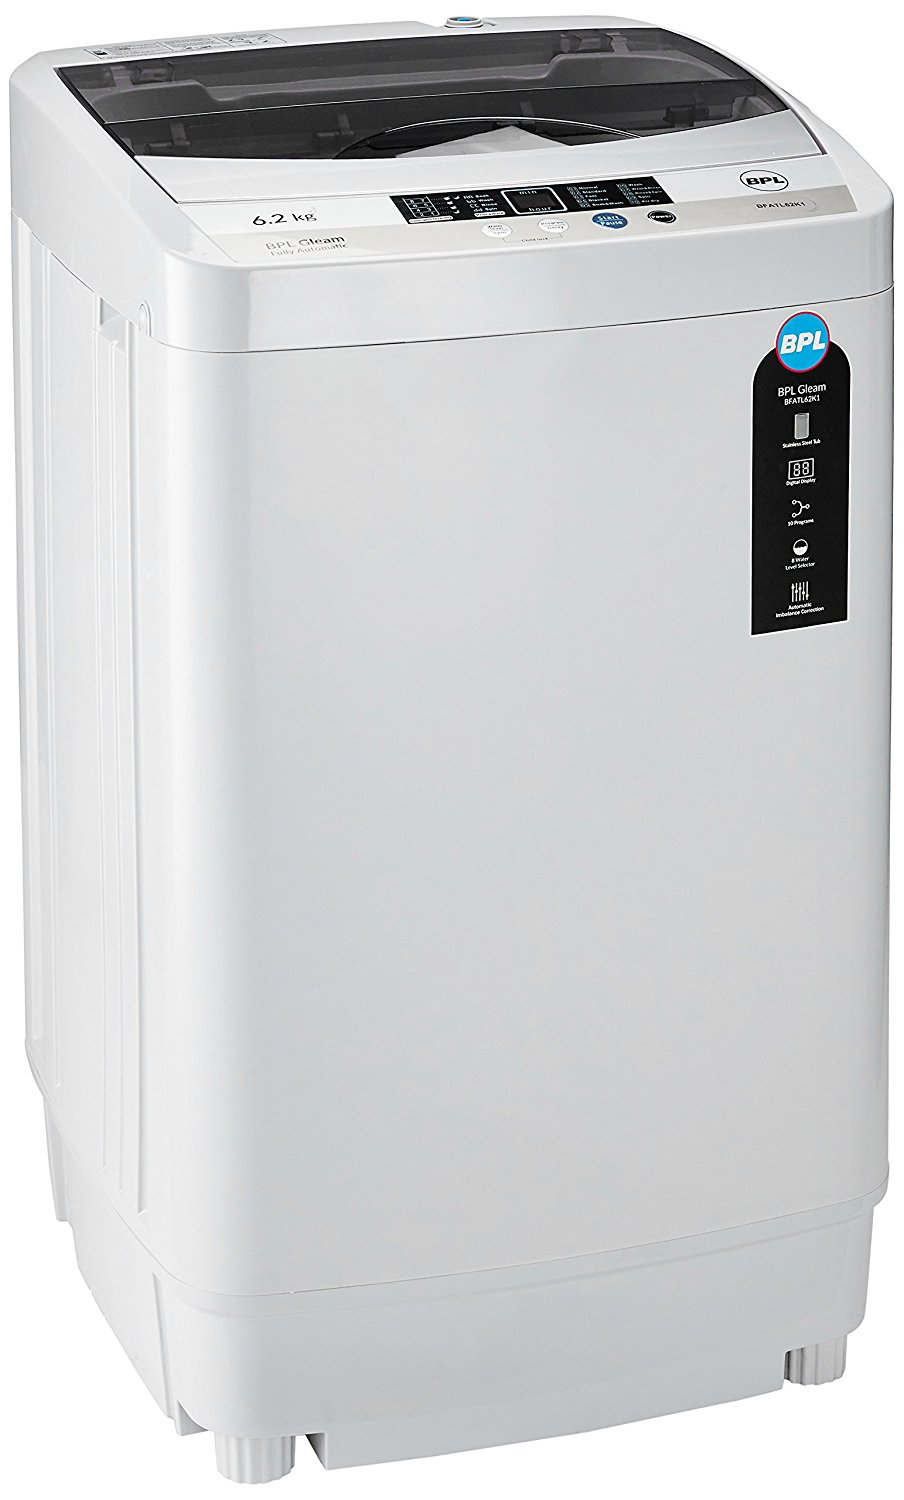 Amazon: BPL 6.2 kg Fully-Automatic Top Loading Washing Machine at Rs.10,490.00